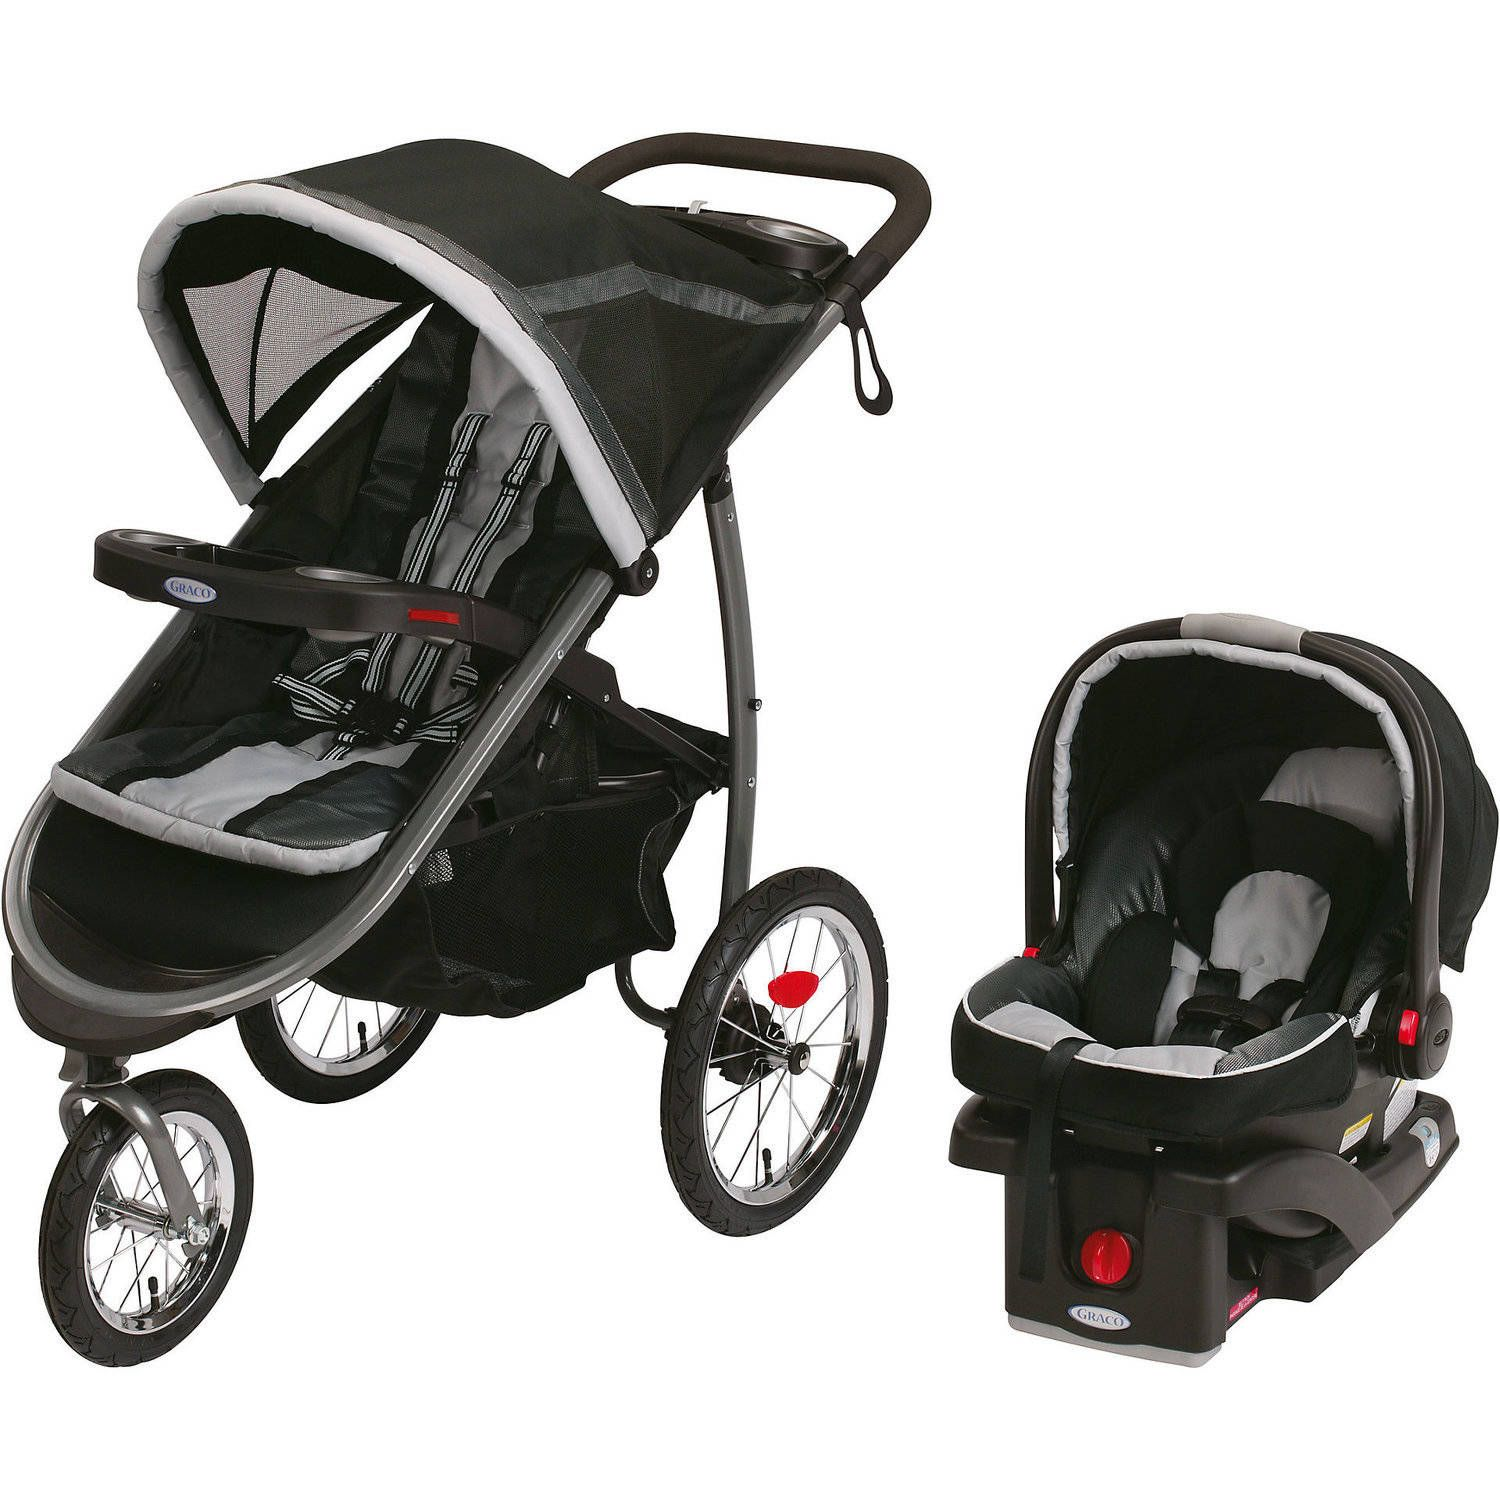 Baby Travel systems for baby, Graco stroller, Click